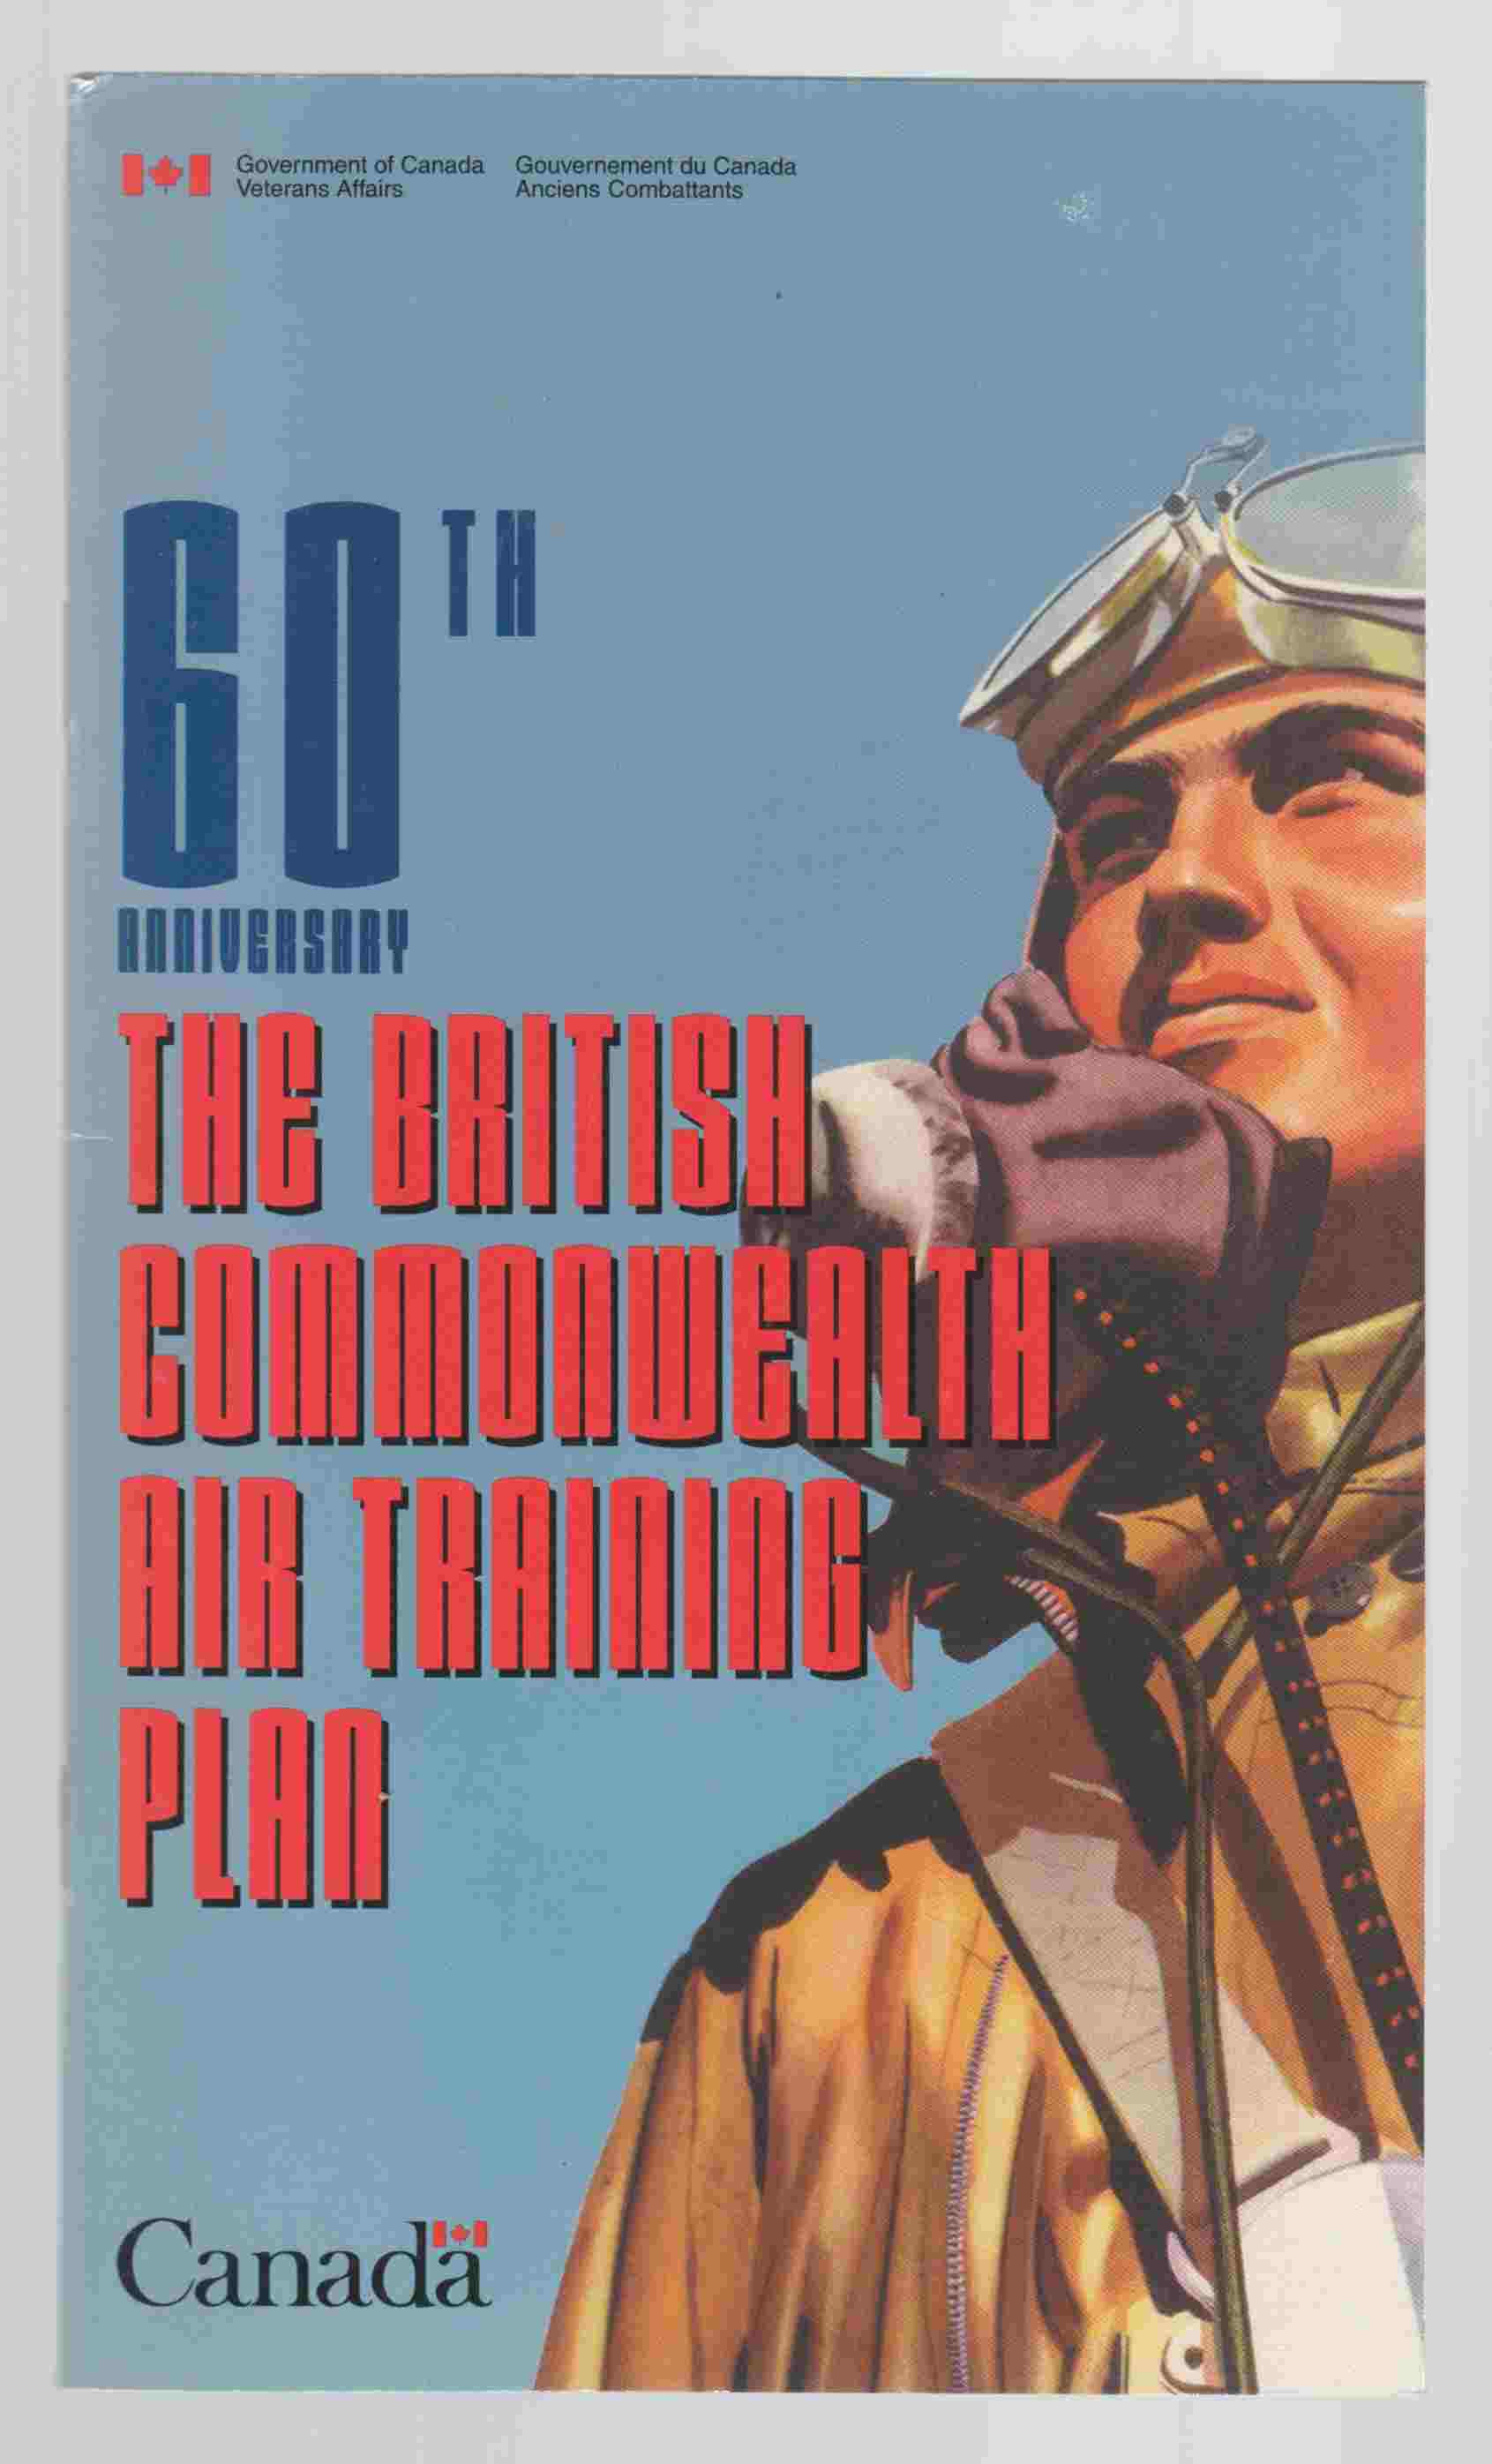 Image for 60th Anniversary The British Commonwealth Air Training Plan